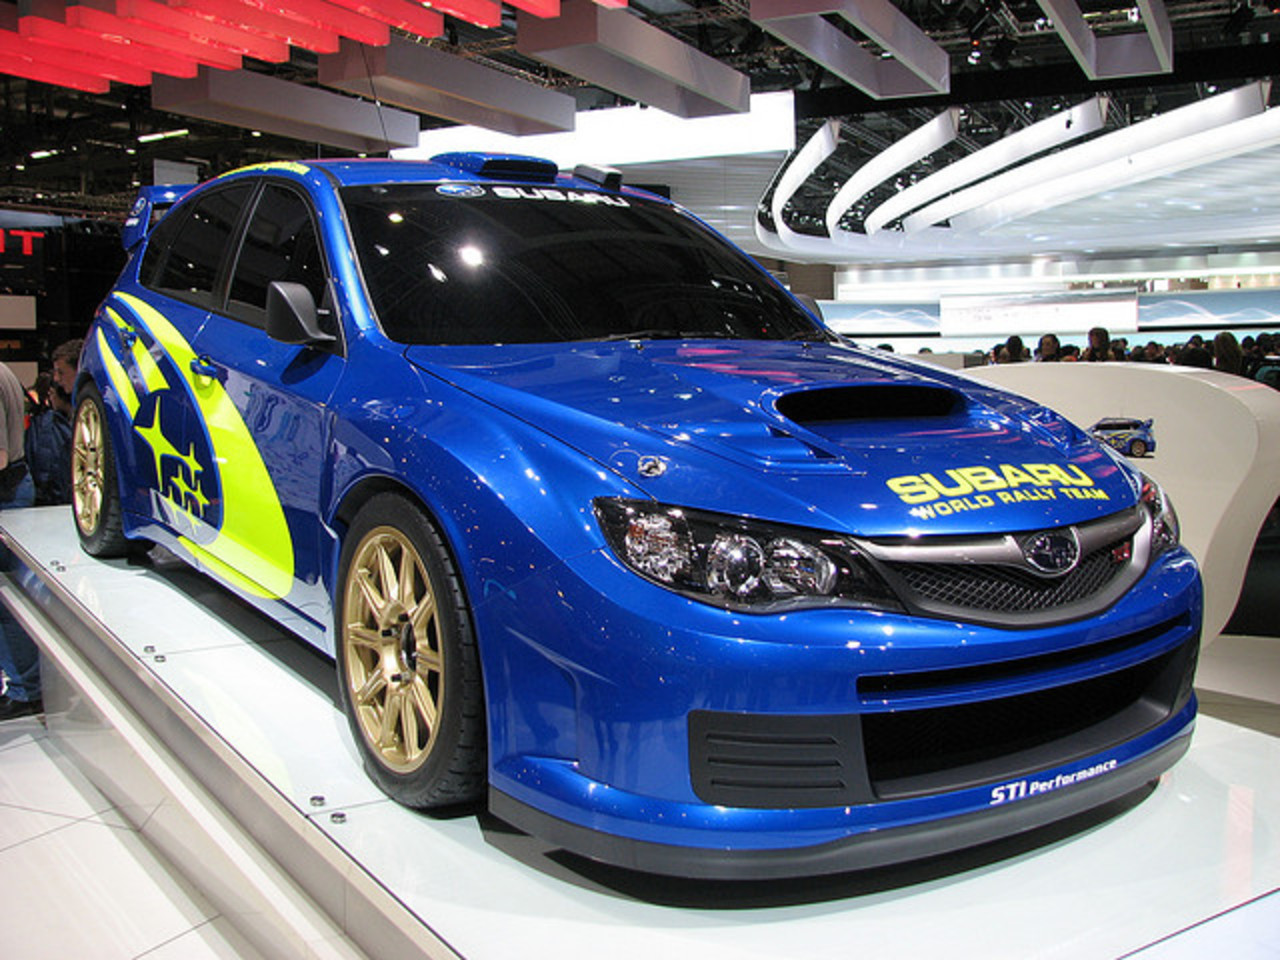 Subaru Impreza WRX STi WRC | Flickr - Photo Sharing!